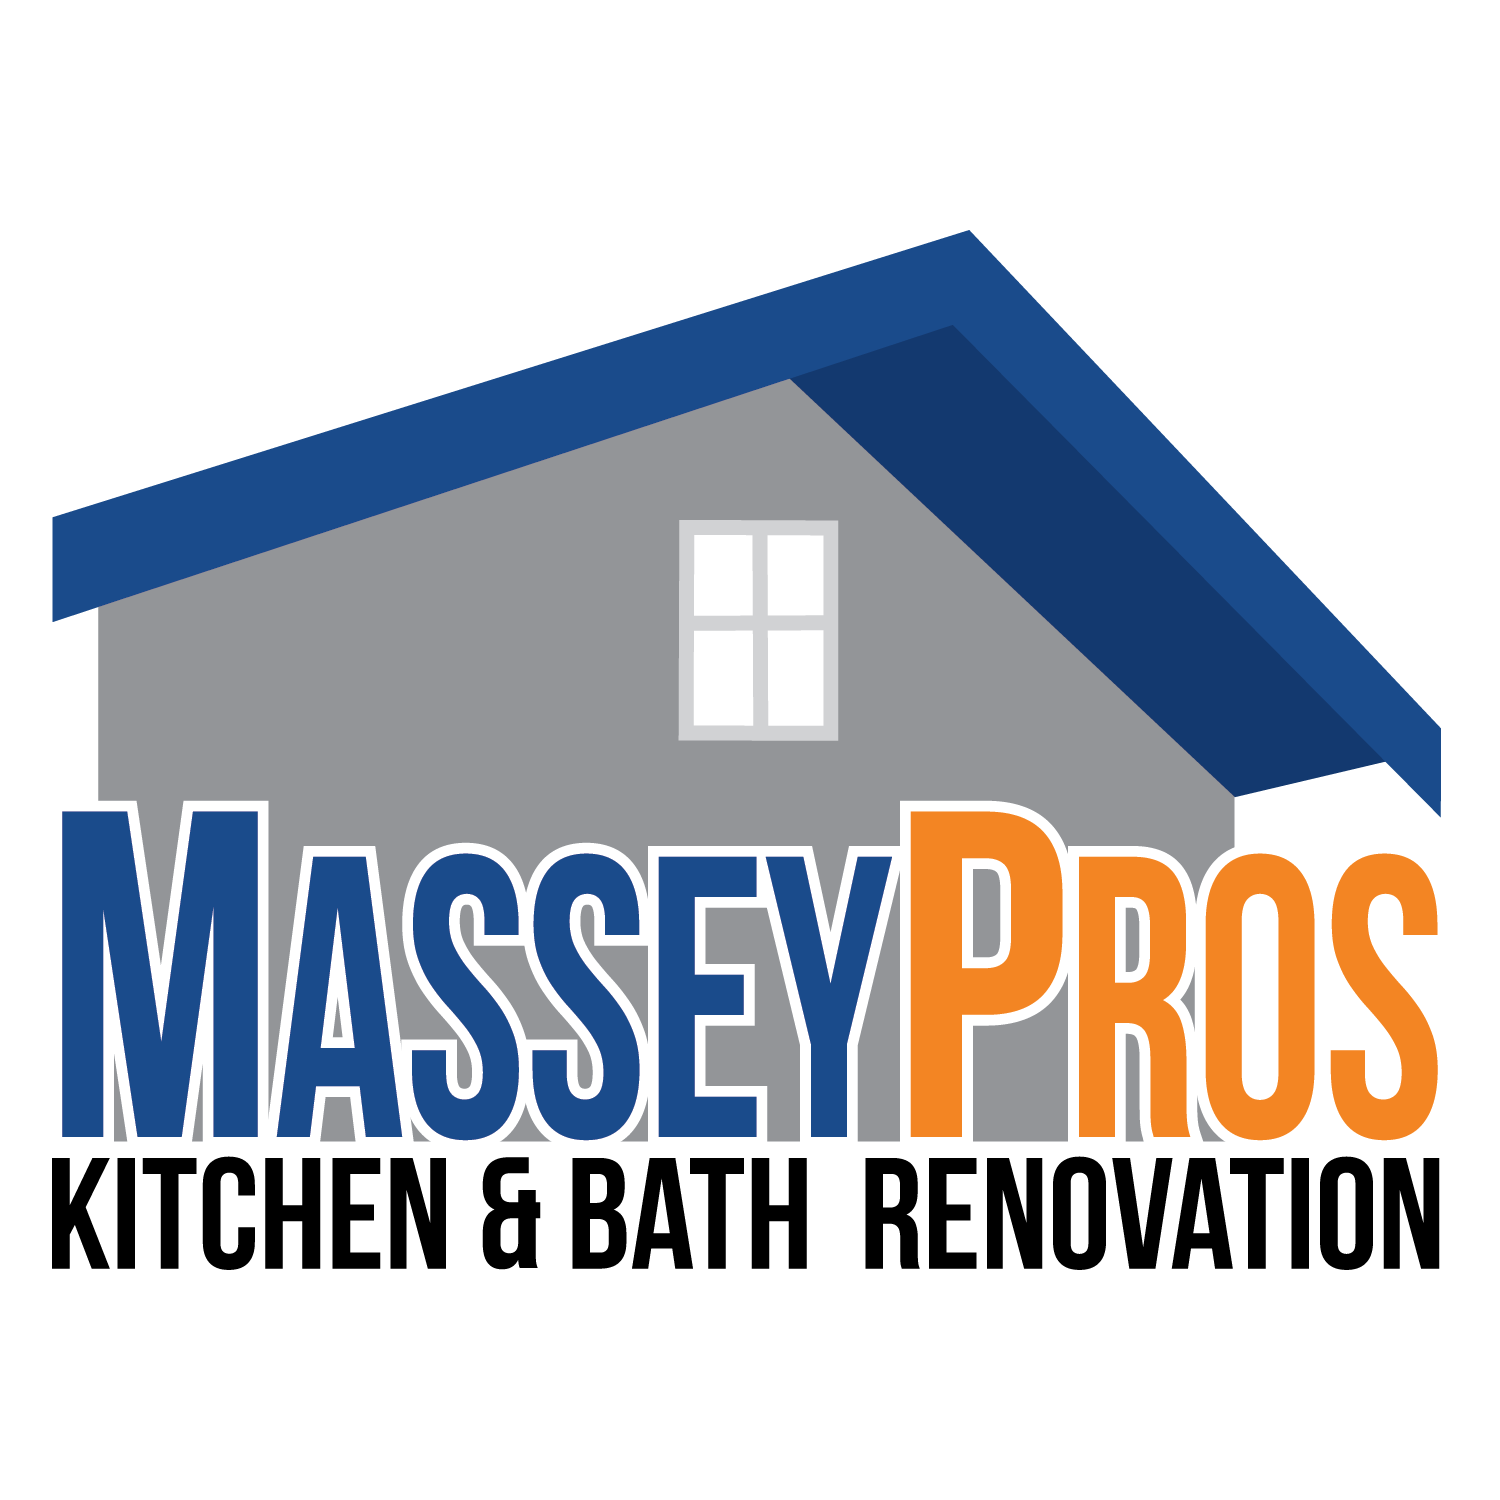 Masseypros Coupons Near Me In 8coupons